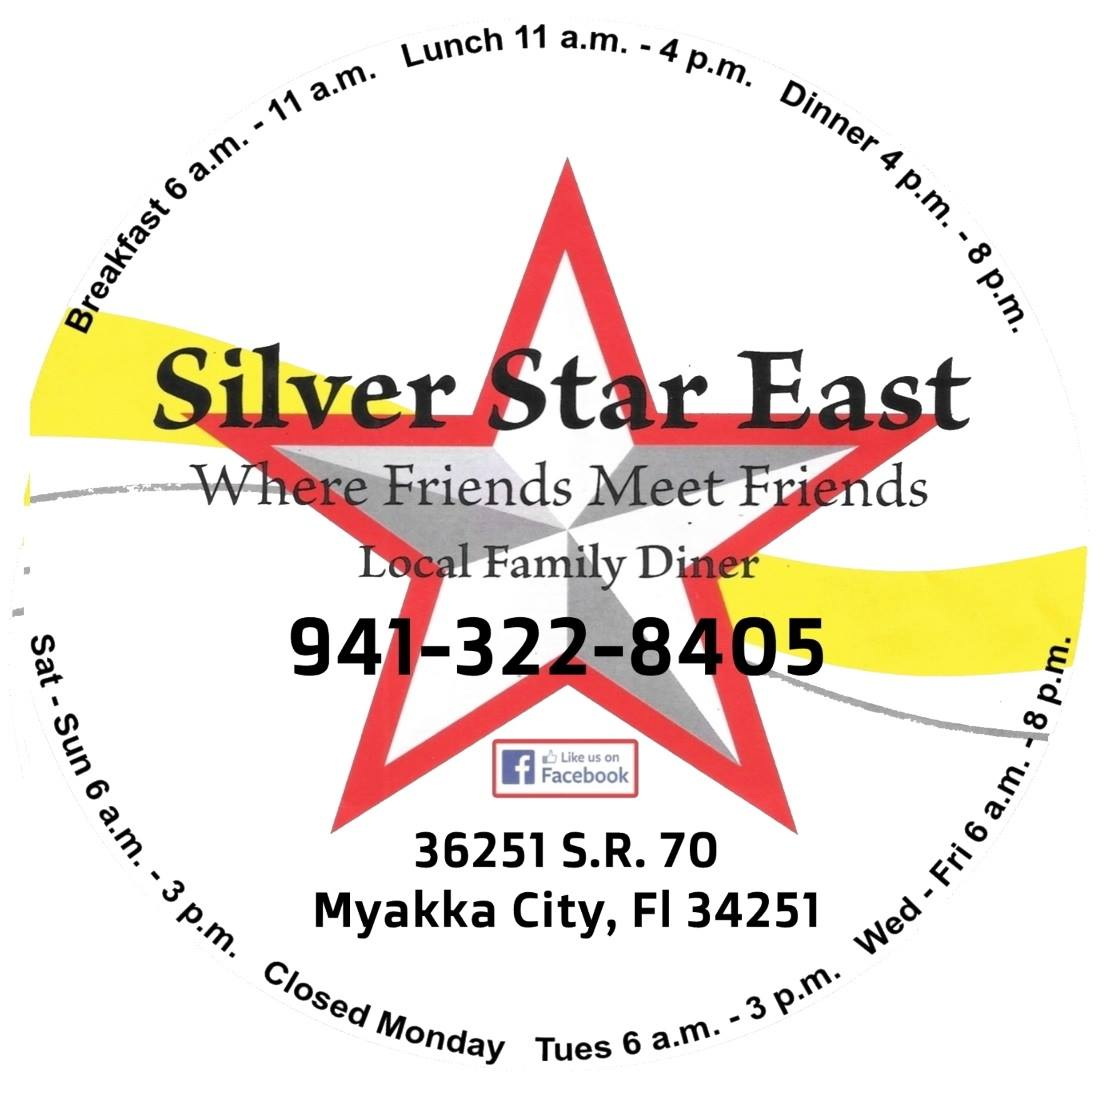 Silver Star East